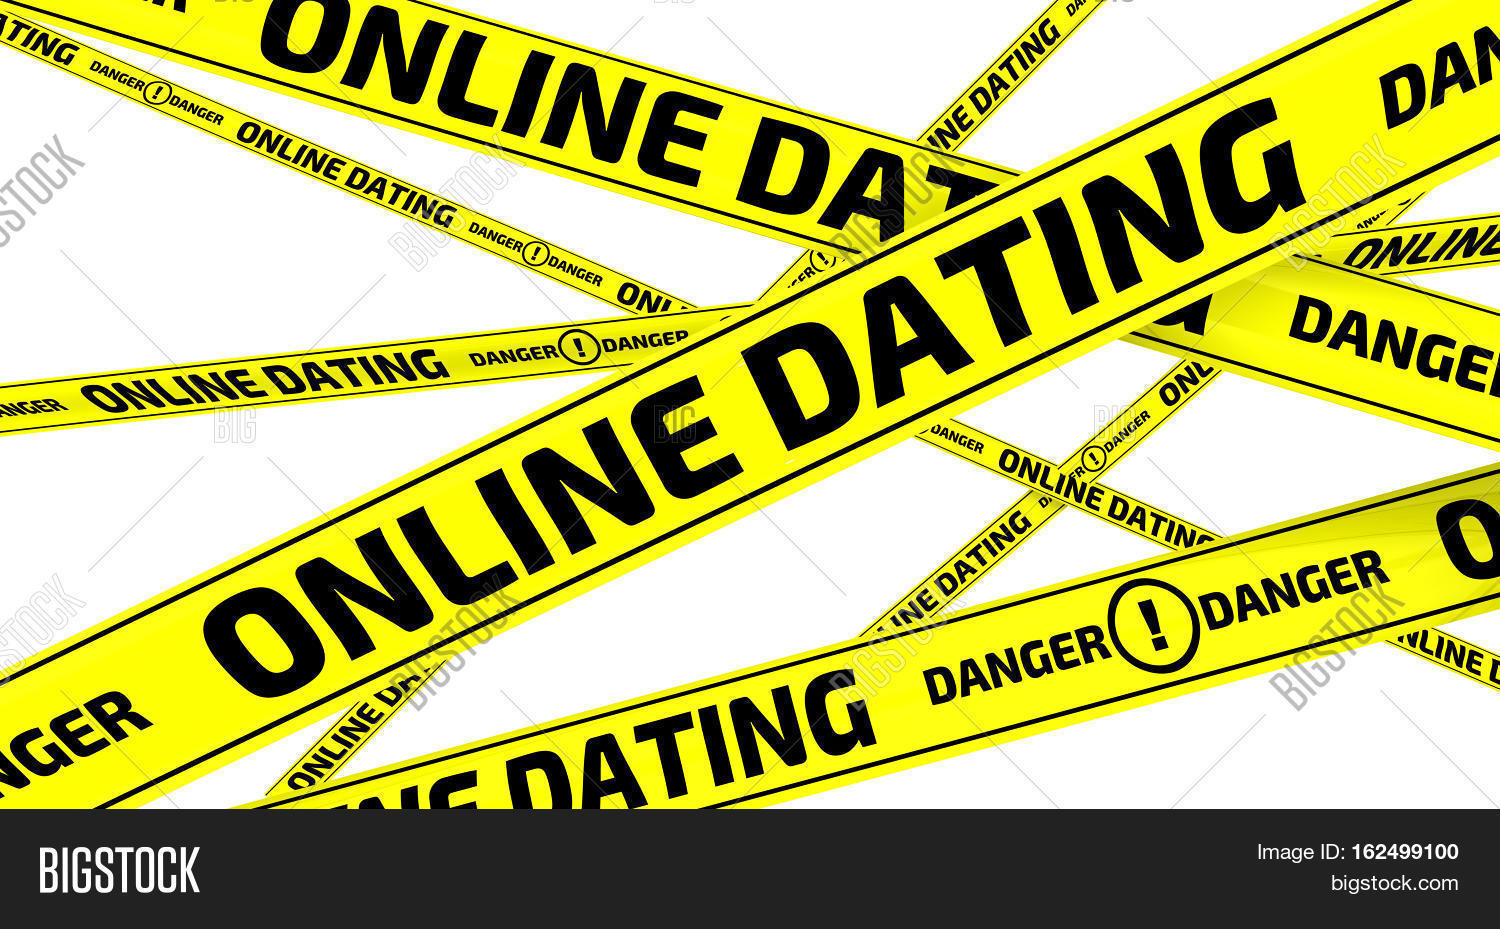 online dating warning aca Fbi online dating warning - find a man in my area free to join to find a woman and meet a man online who is single and seek you join the leader in online dating services and find a date today.